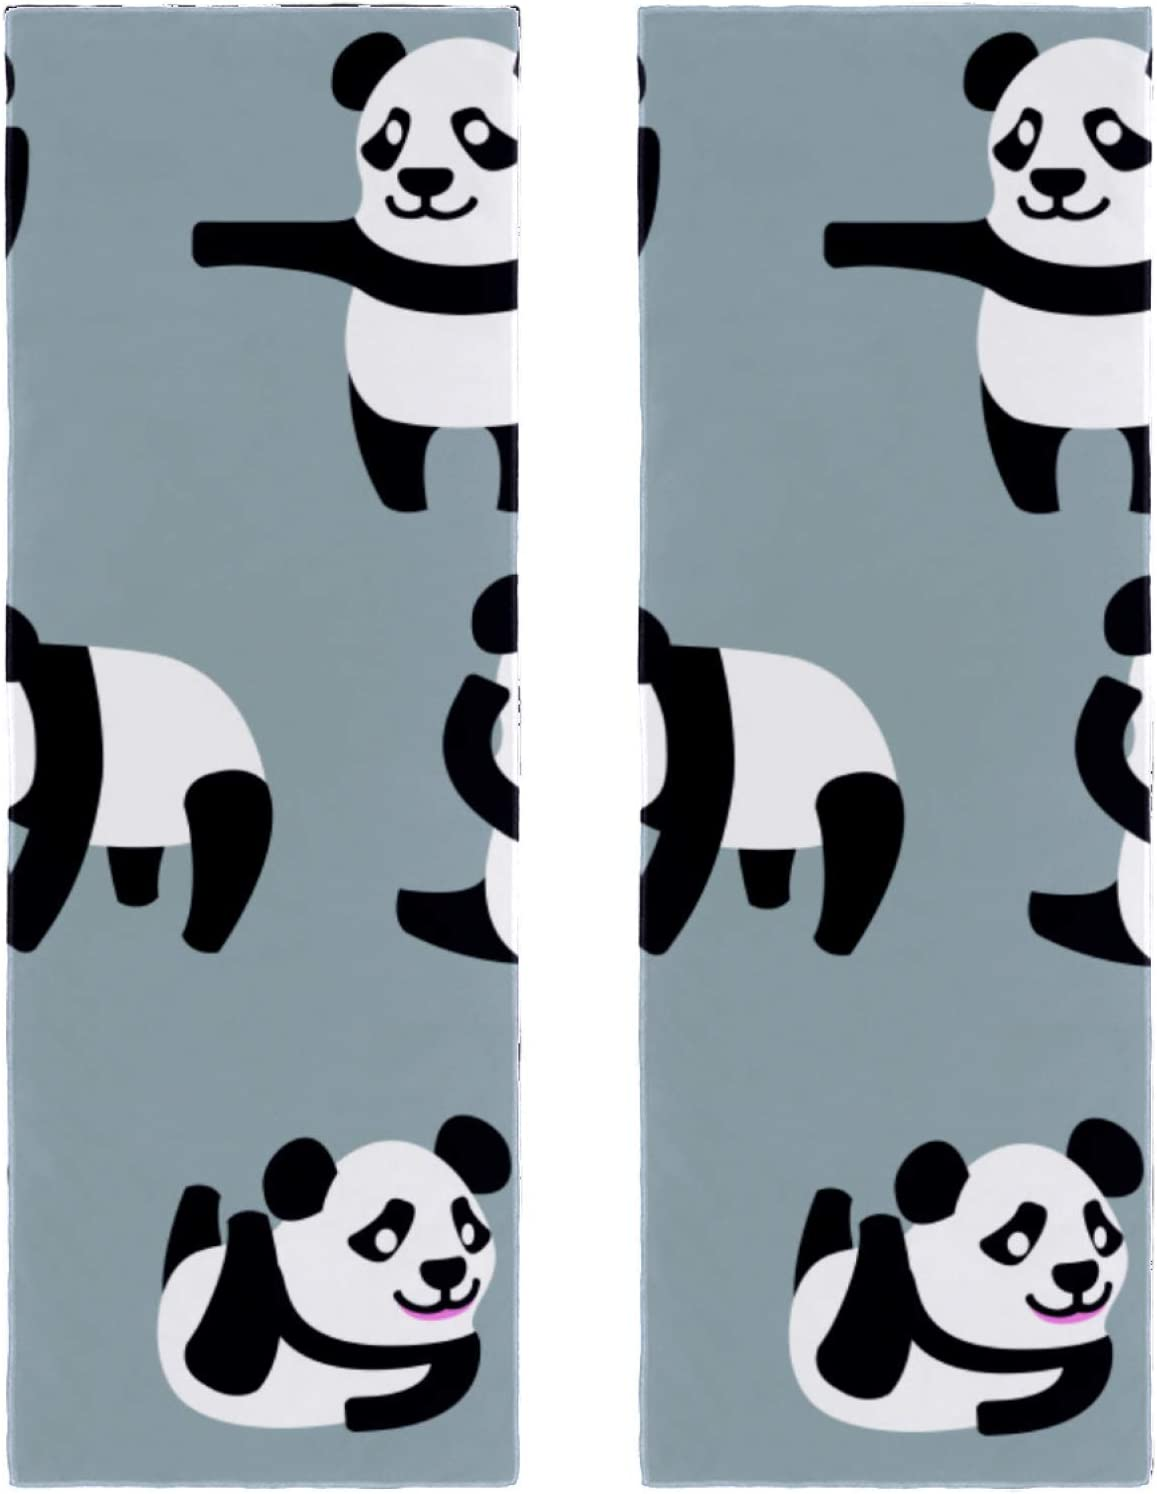 2 Packs Yoga Towel for Super Special SALE held Gym Max 61% OFF and Beach Travel Panda Camping Baby